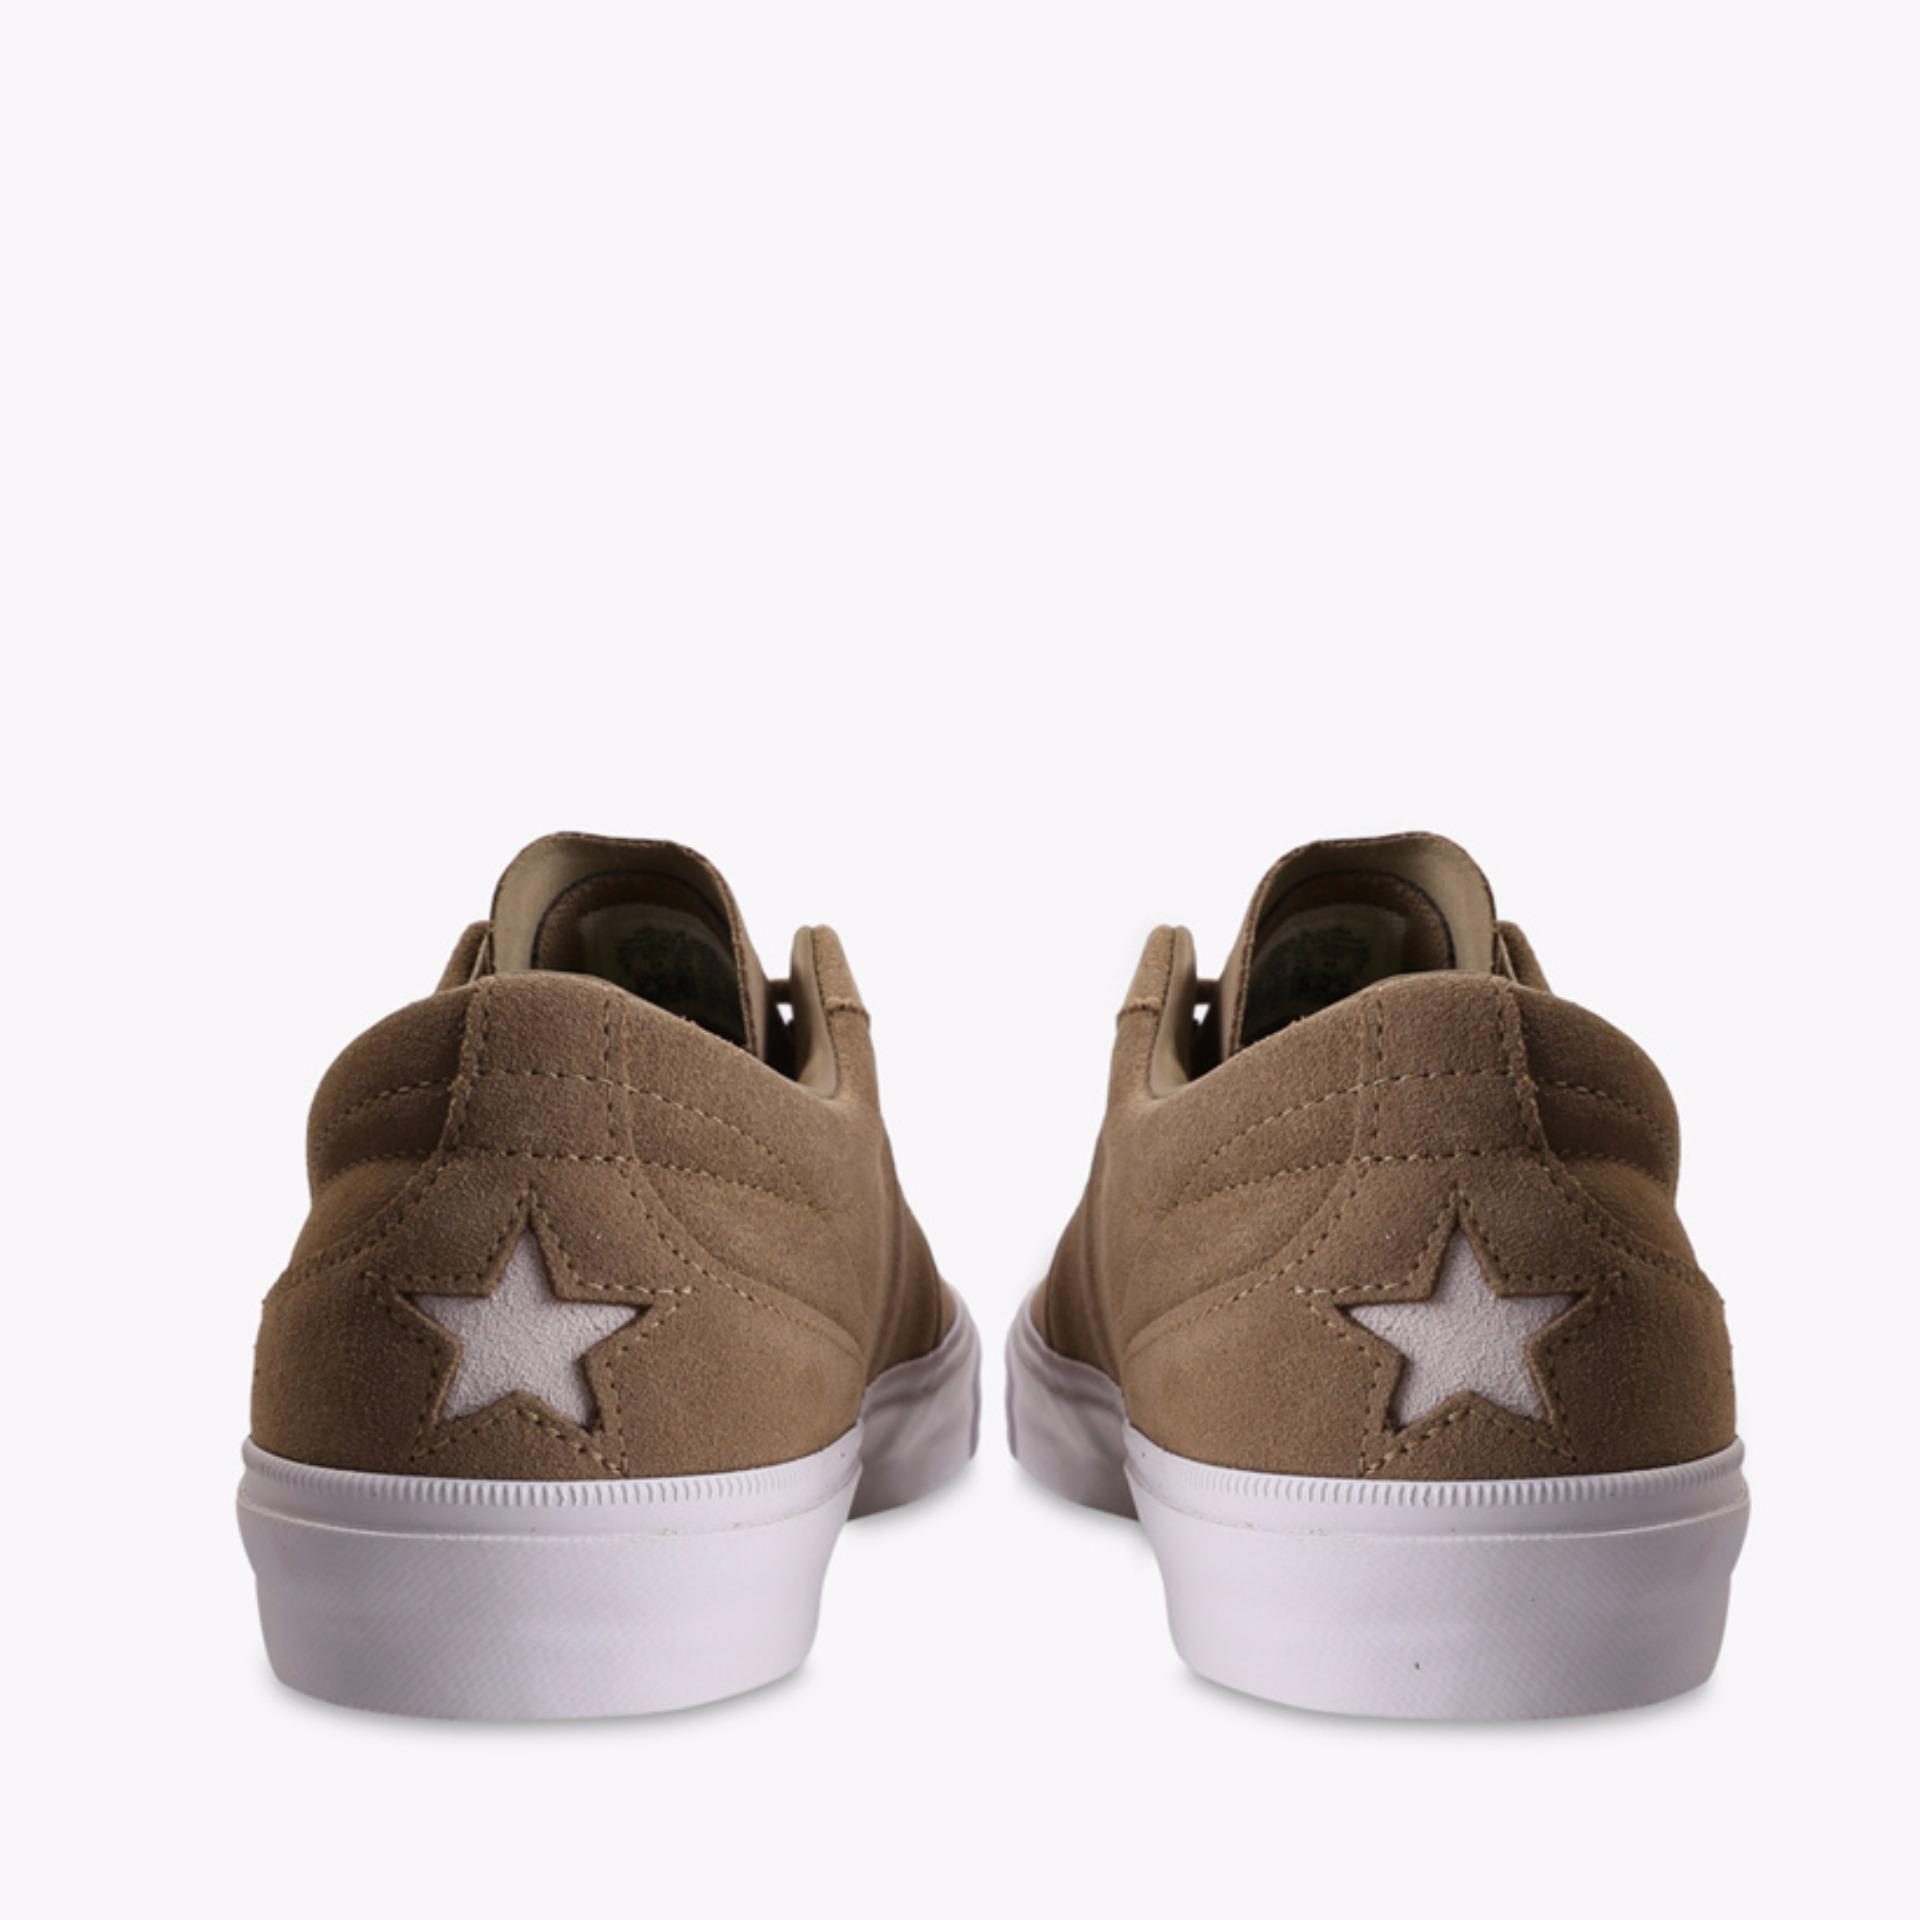 ... Converse One Star CC Ox Men's Sneakers Shoes - Khaki ...